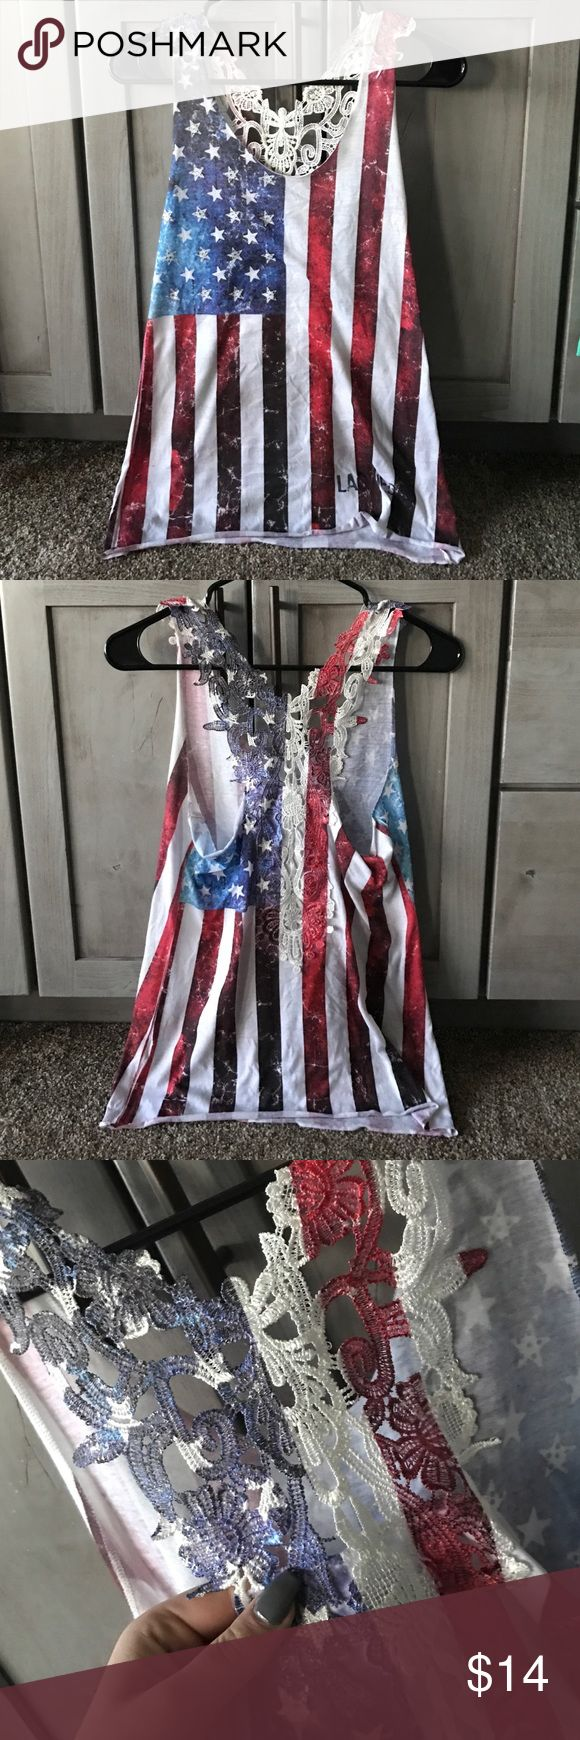 American Flag Tank Top Cute American flag tank top, no wear and tear, with rhinestones on some of the stars on the front! IFSE Tops Tank Tops